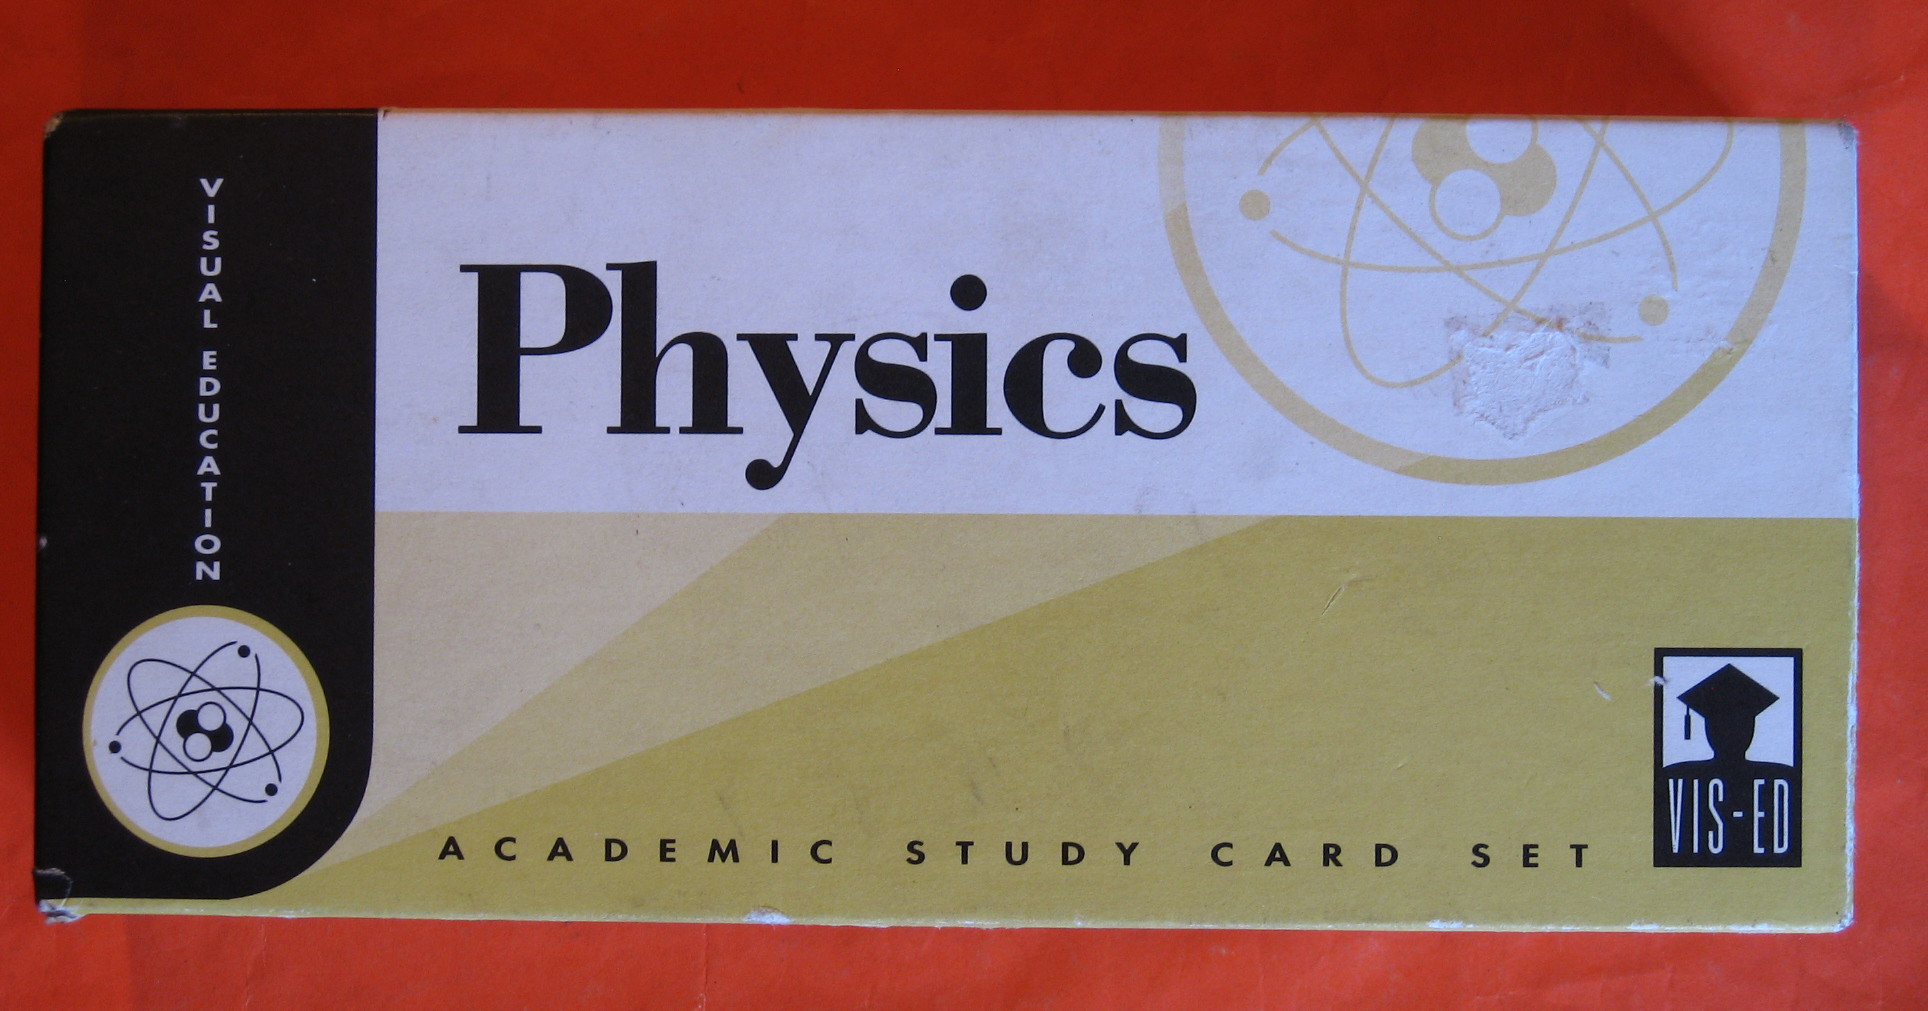 Physics Academic Study Card Set, Vis-Ed (Visual Education)